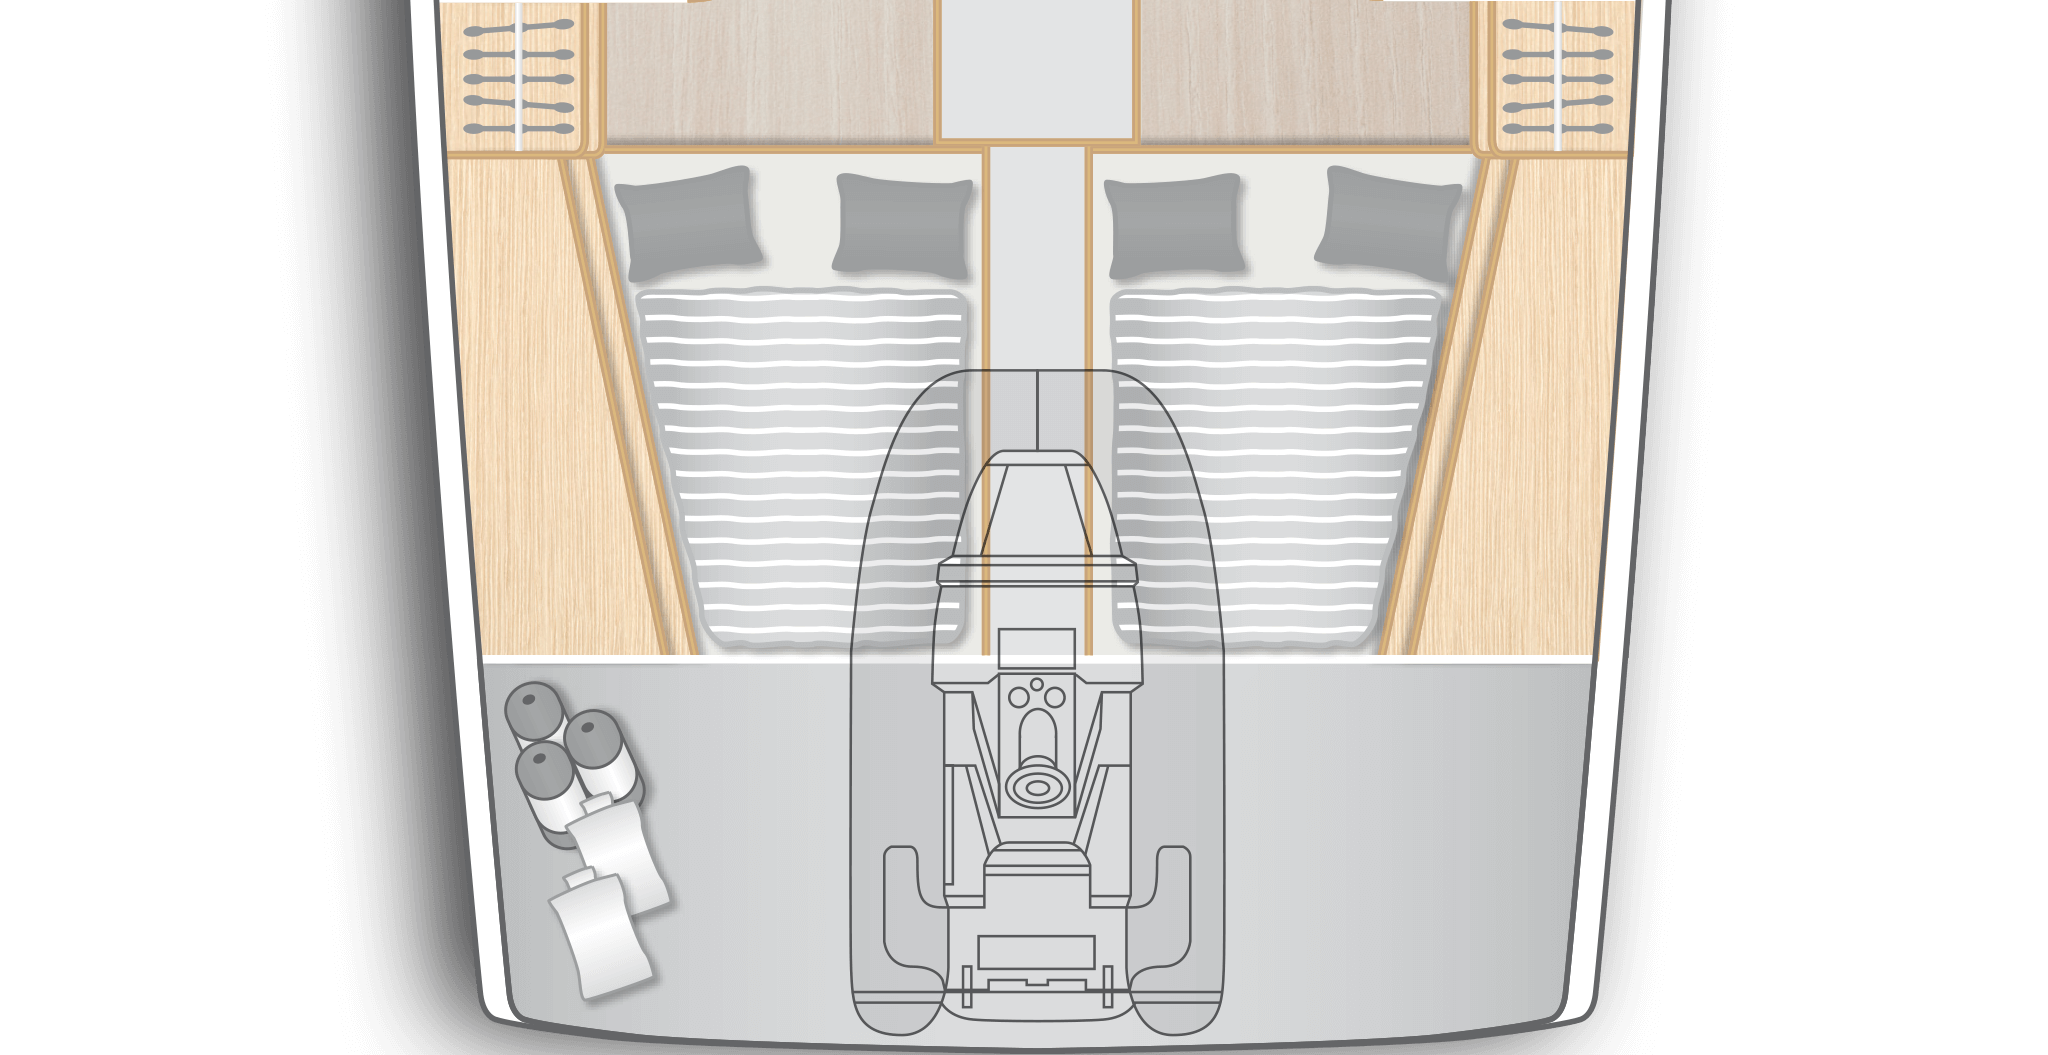 E1: 2 aft cabins with double berth, storage space and separate head